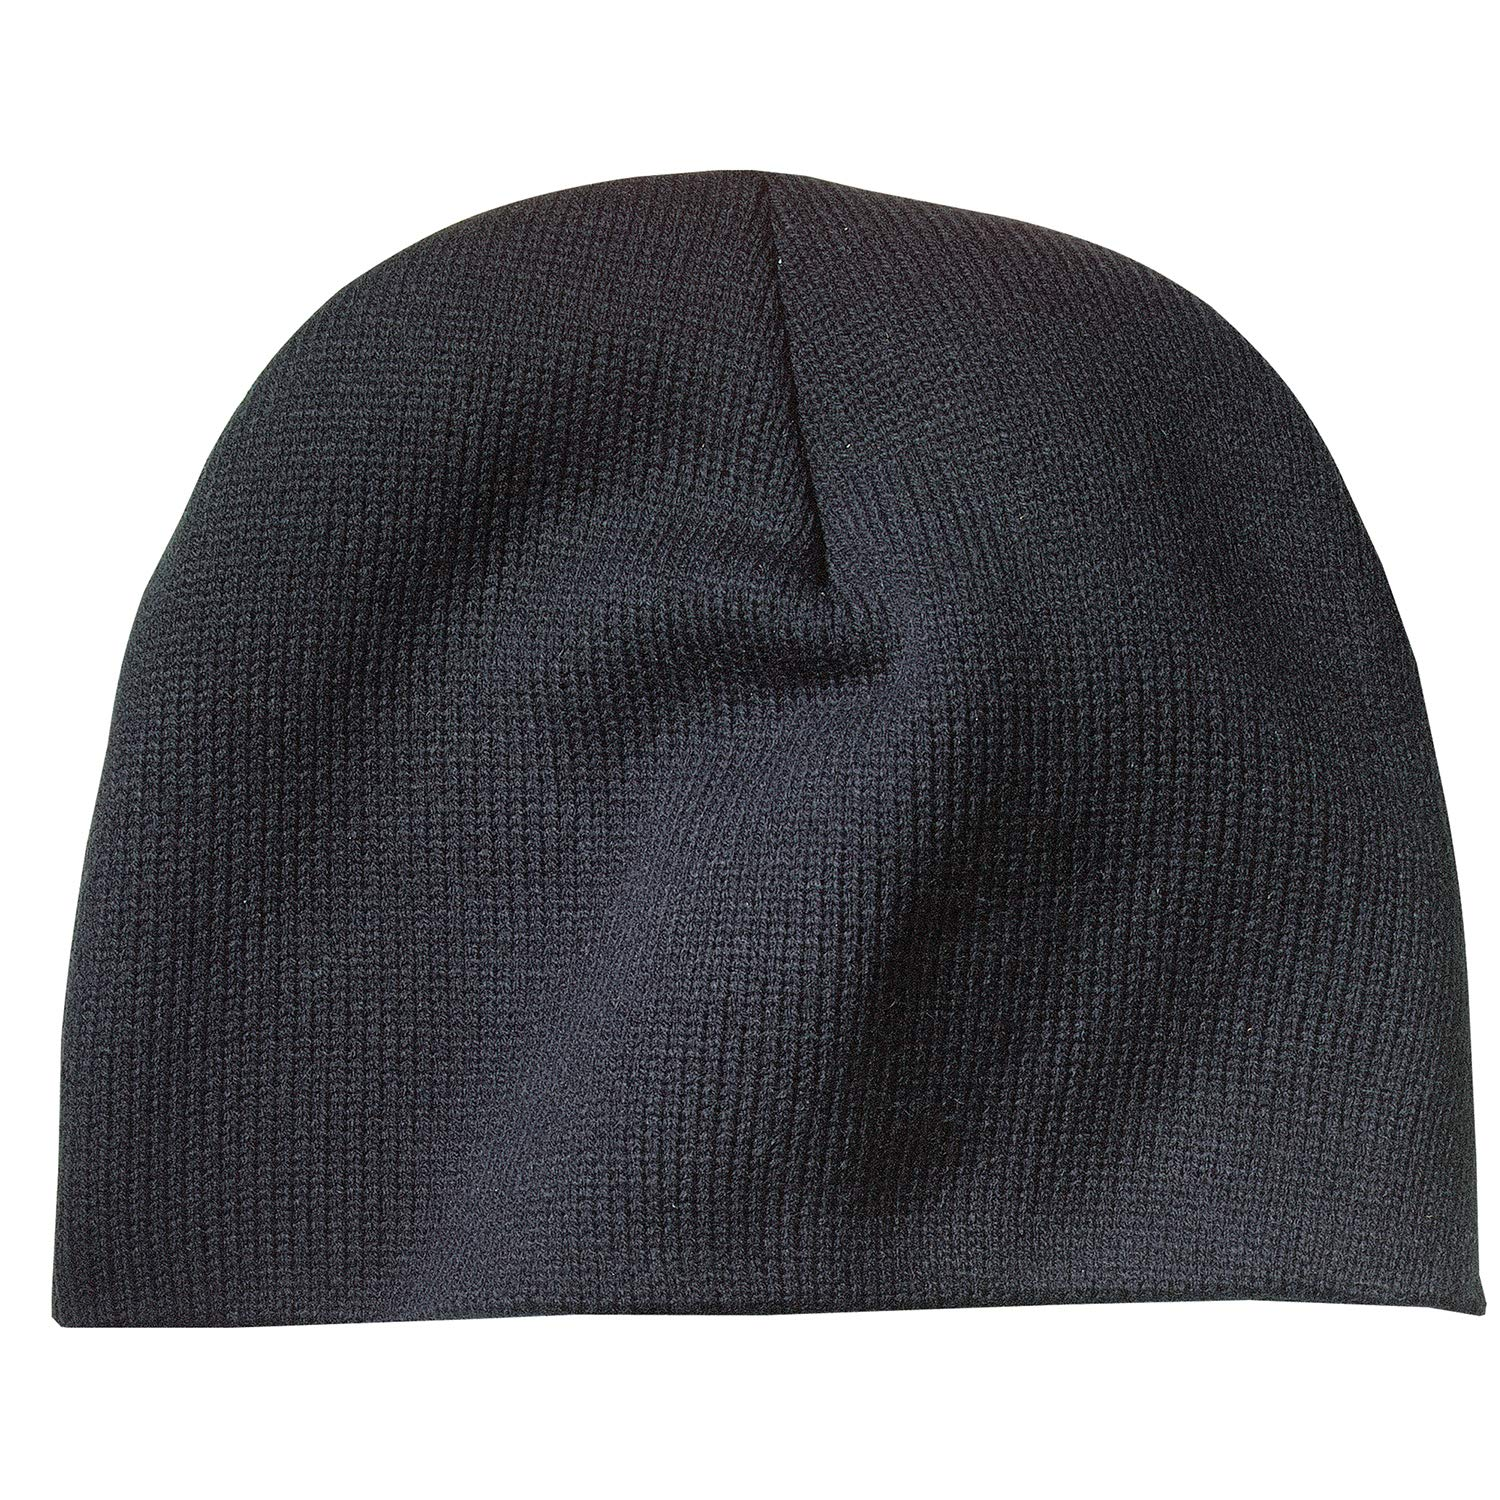 500bd7e38f9 Port   Company CP91 Beanie Cap (Athletic Oxford) at Amazon Men s Clothing  store